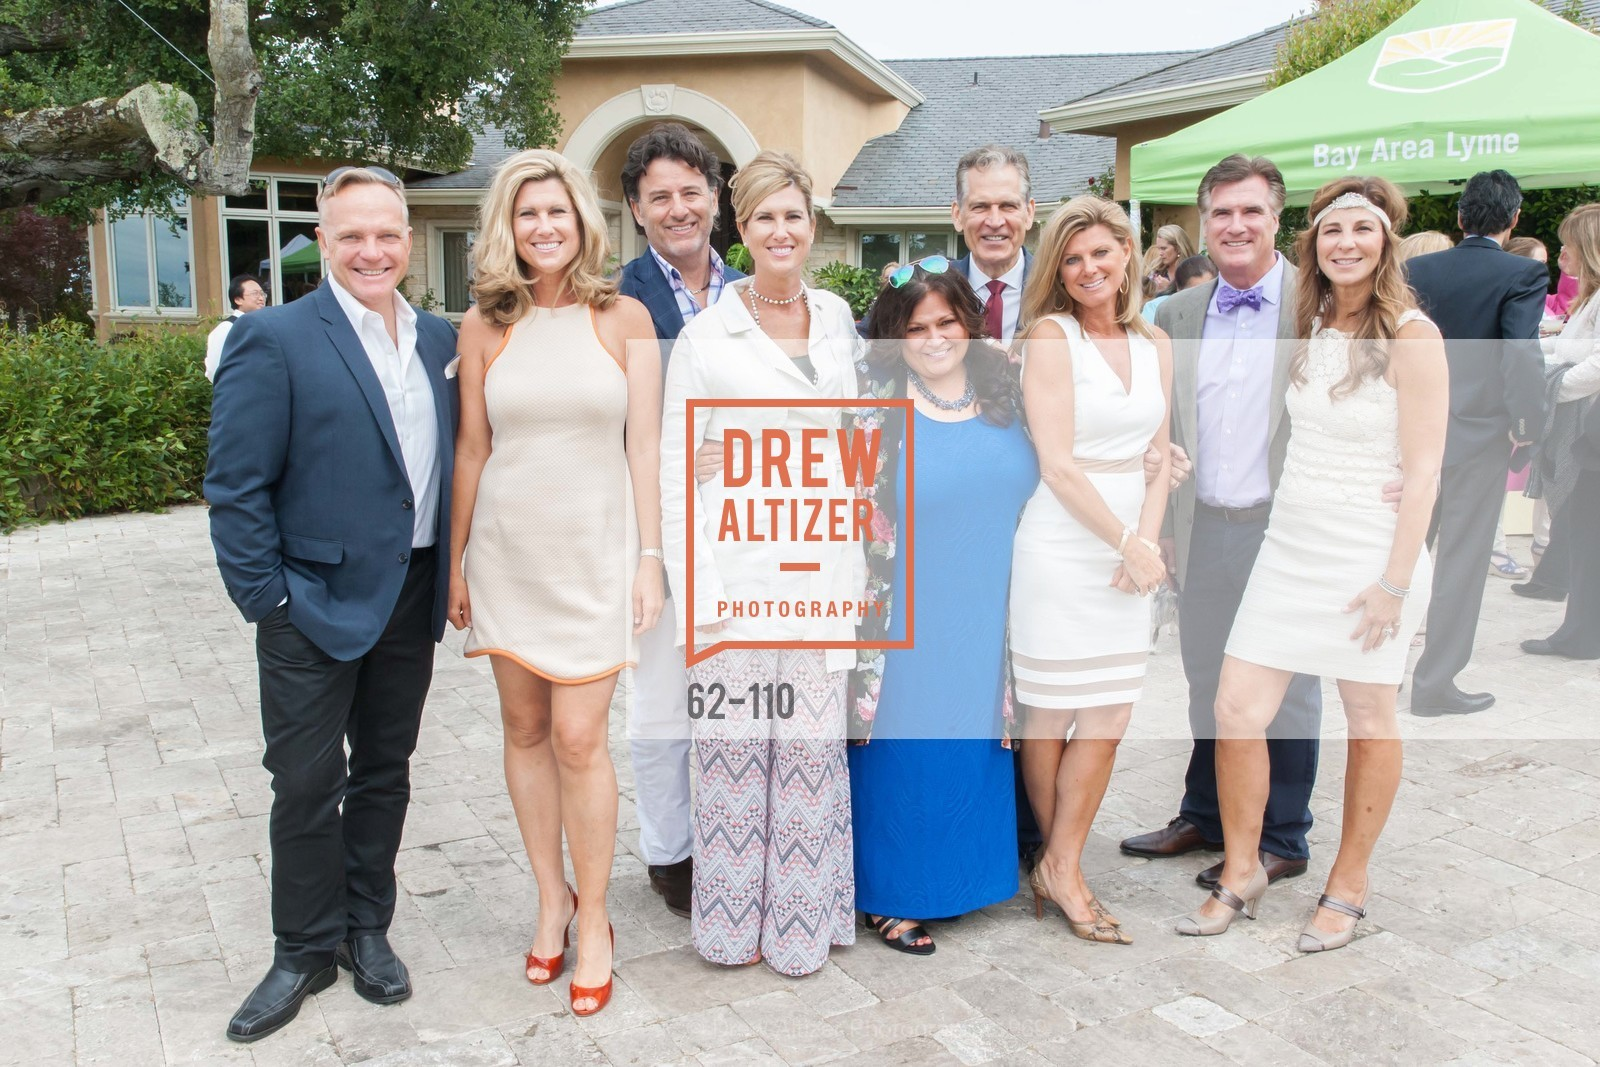 Davoran Kuchan, Lucy Kuchan, Craig Cousins, Aggie Cousins, Mary Winchester, Ray Strimaitis, Vita Strimaitis, Joe Nemeth, Stacy Nemeth, LYME AID 2015 Benefiting the Bay Area Lyme Foundation, Private Residence, May 16th, 2015,Drew Altizer, Drew Altizer Photography, full-service agency, private events, San Francisco photographer, photographer california